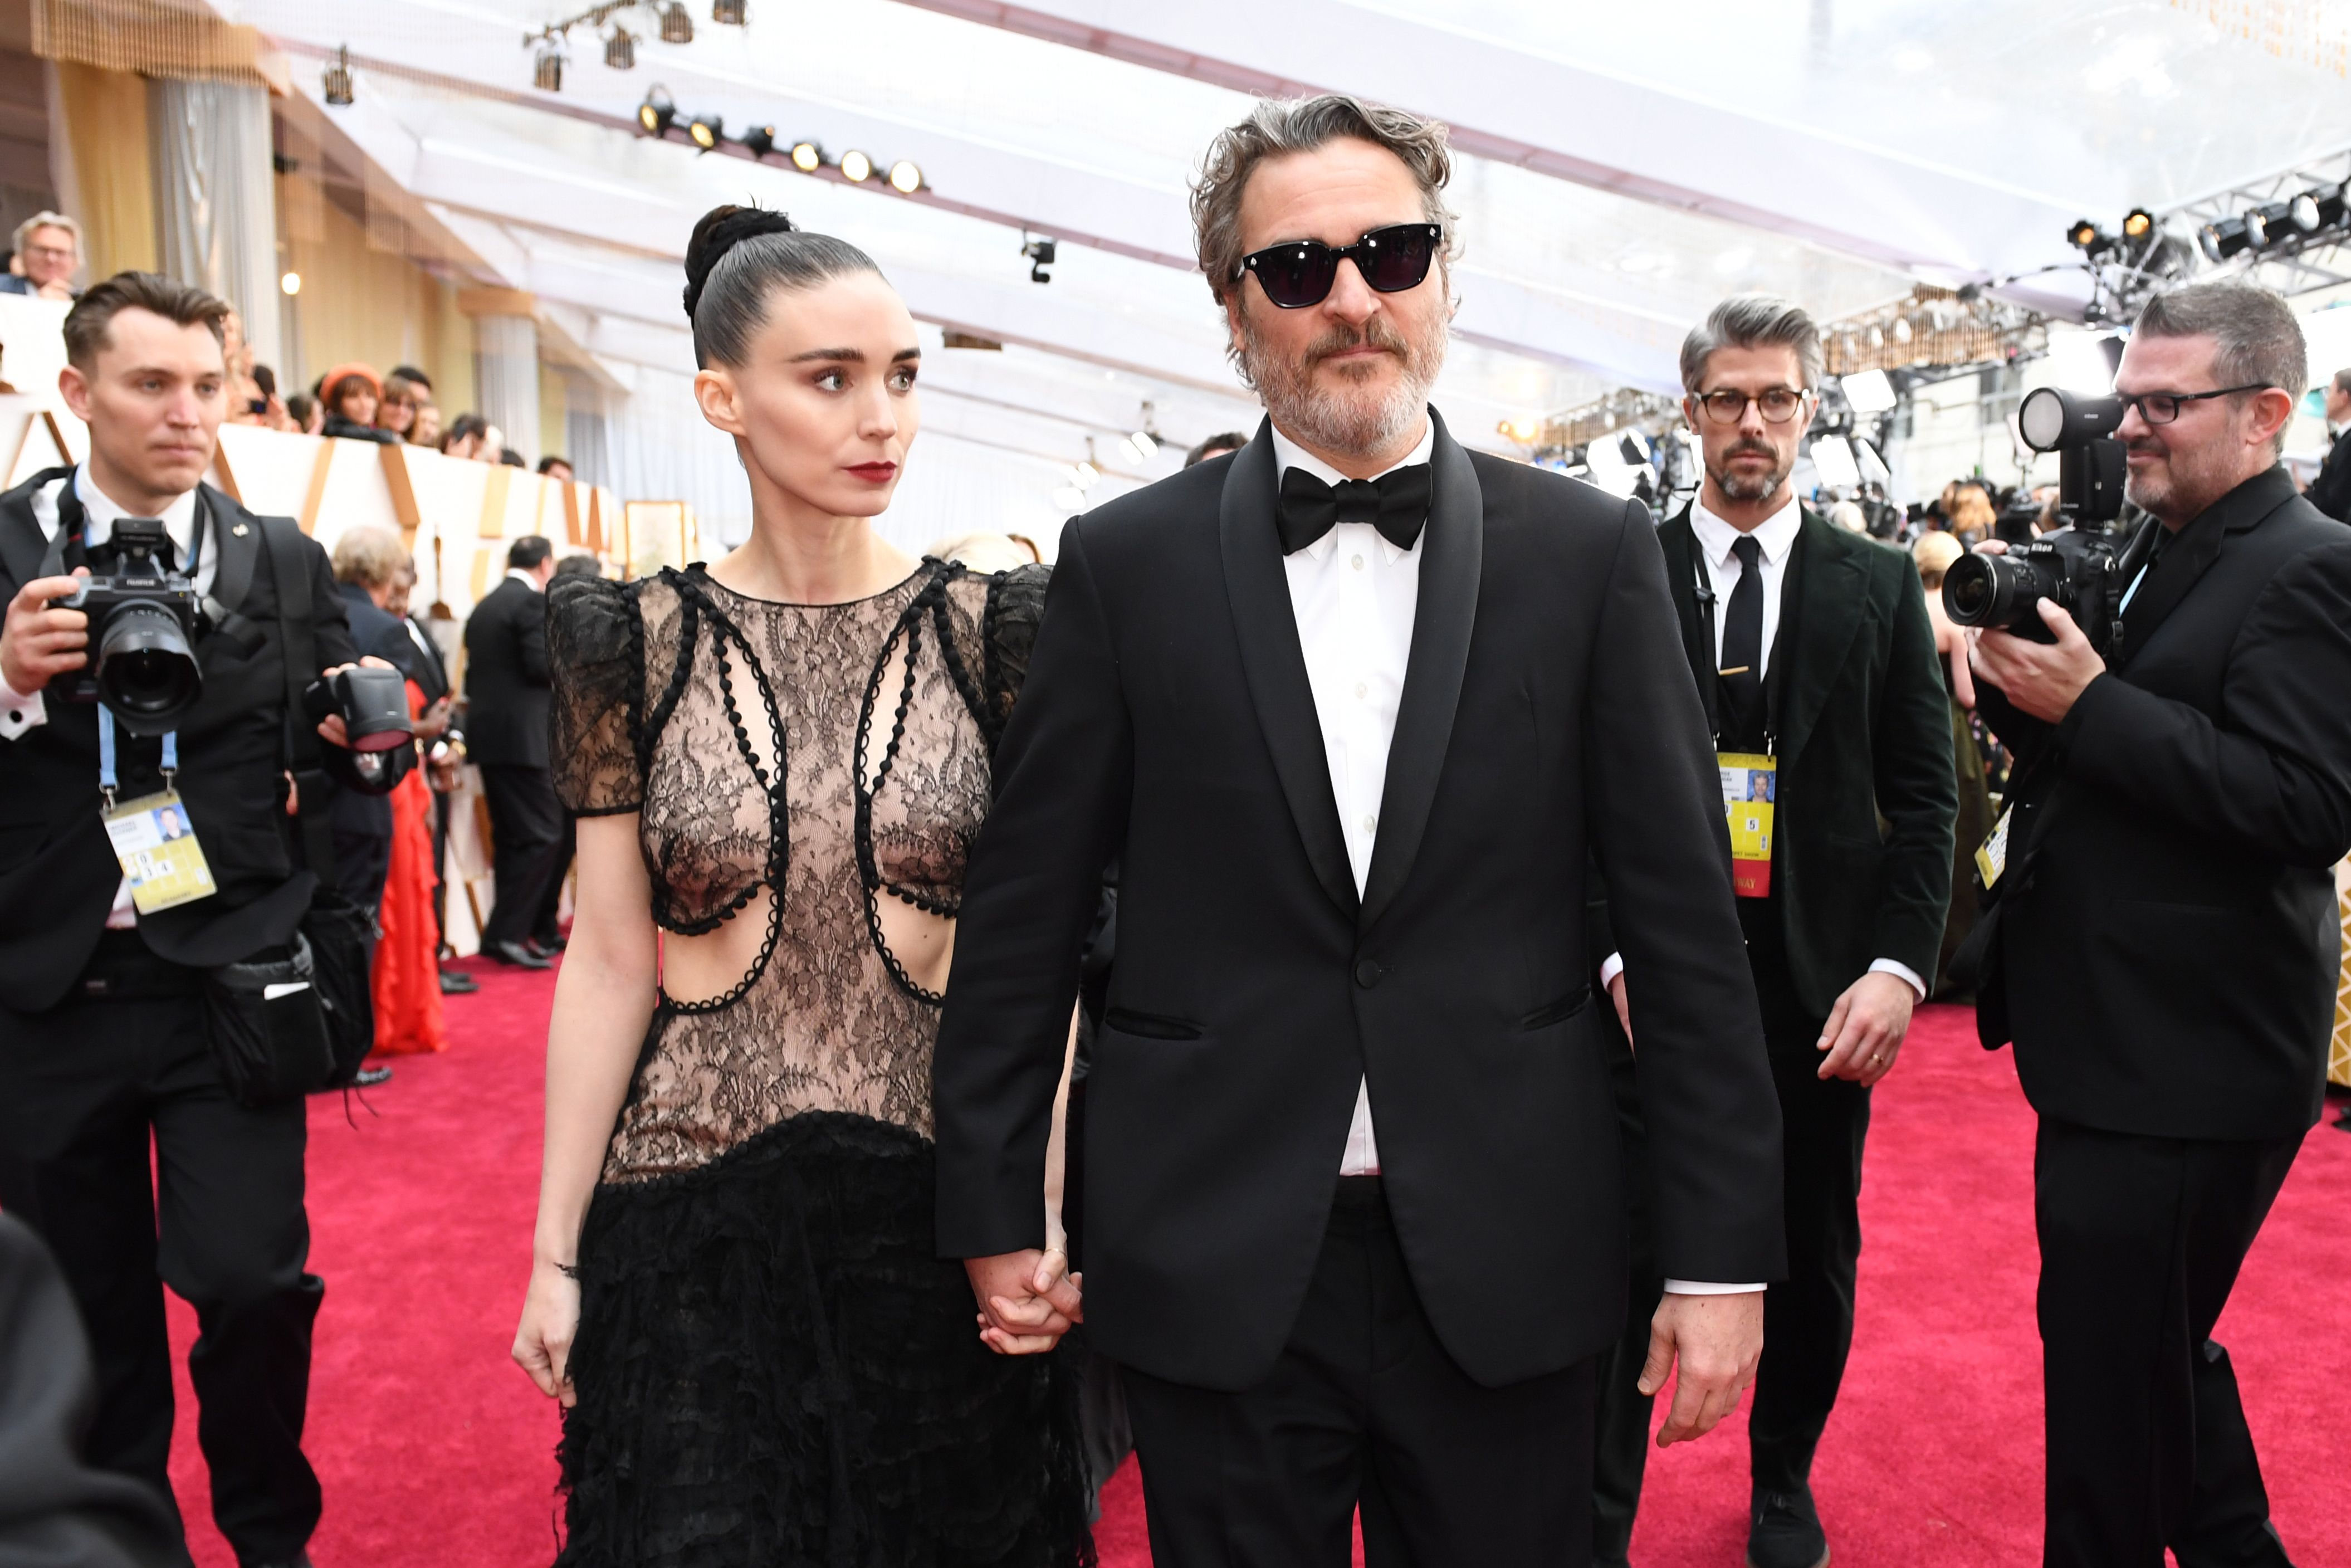 Joaquin Phoenix and Rooney Mara at an event for The Oscars (2020)